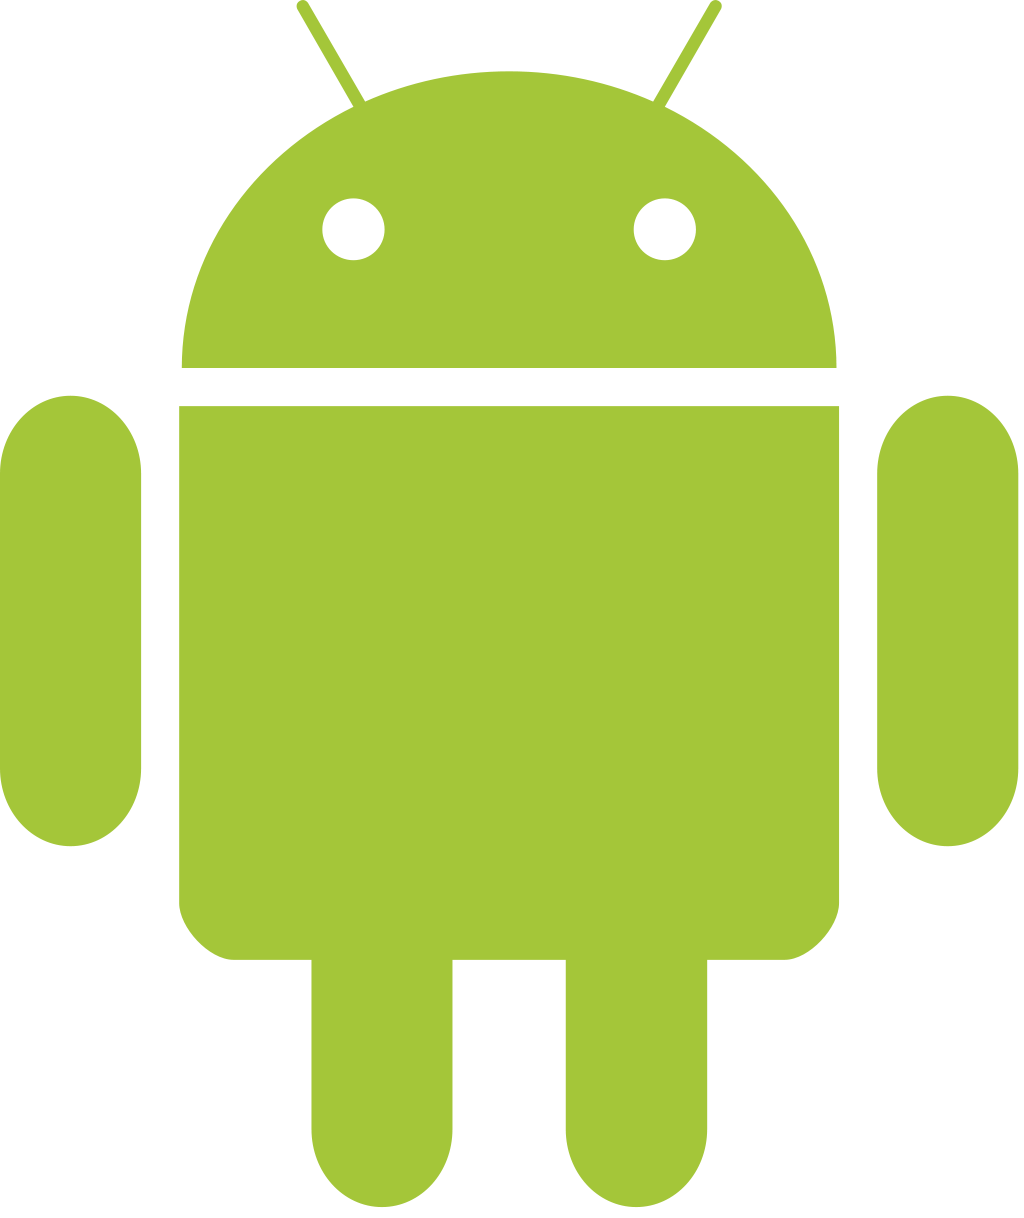 File robot wikimedia commons. Android drawable png clip art black and white